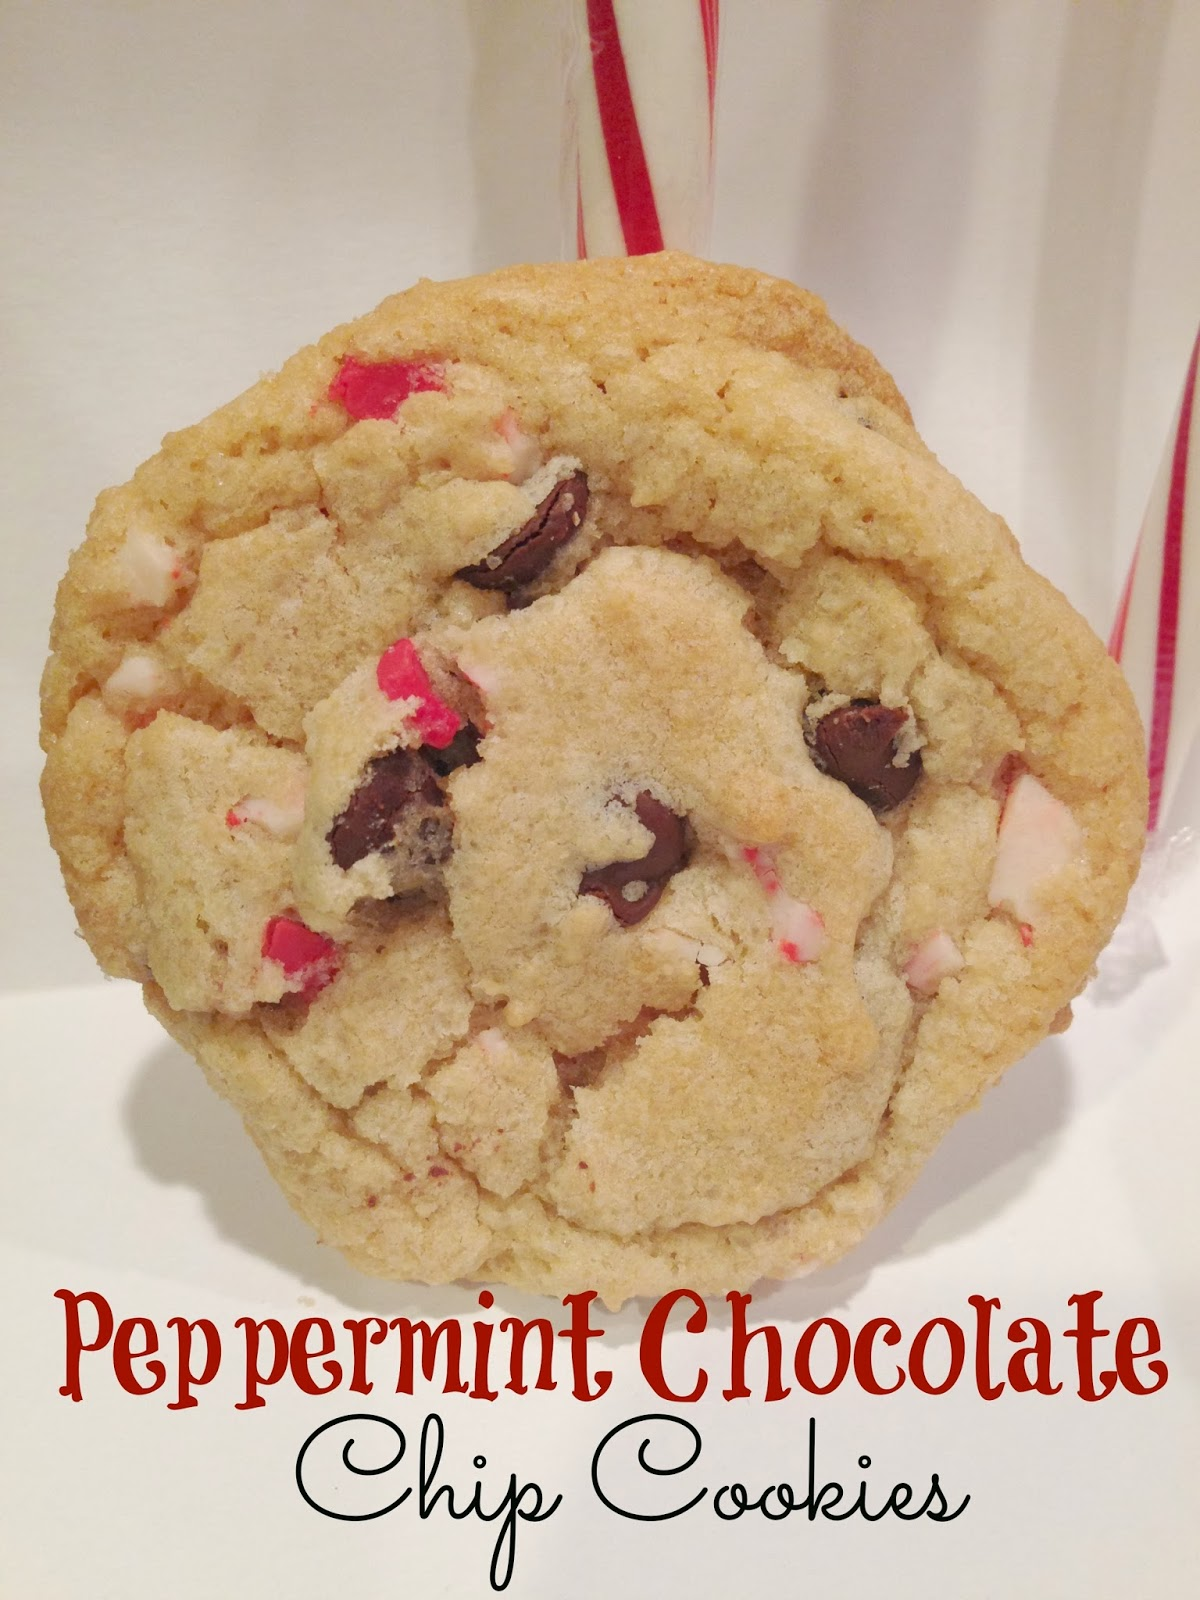 simply made with love: Peppermint Chocolate Chip Cookies